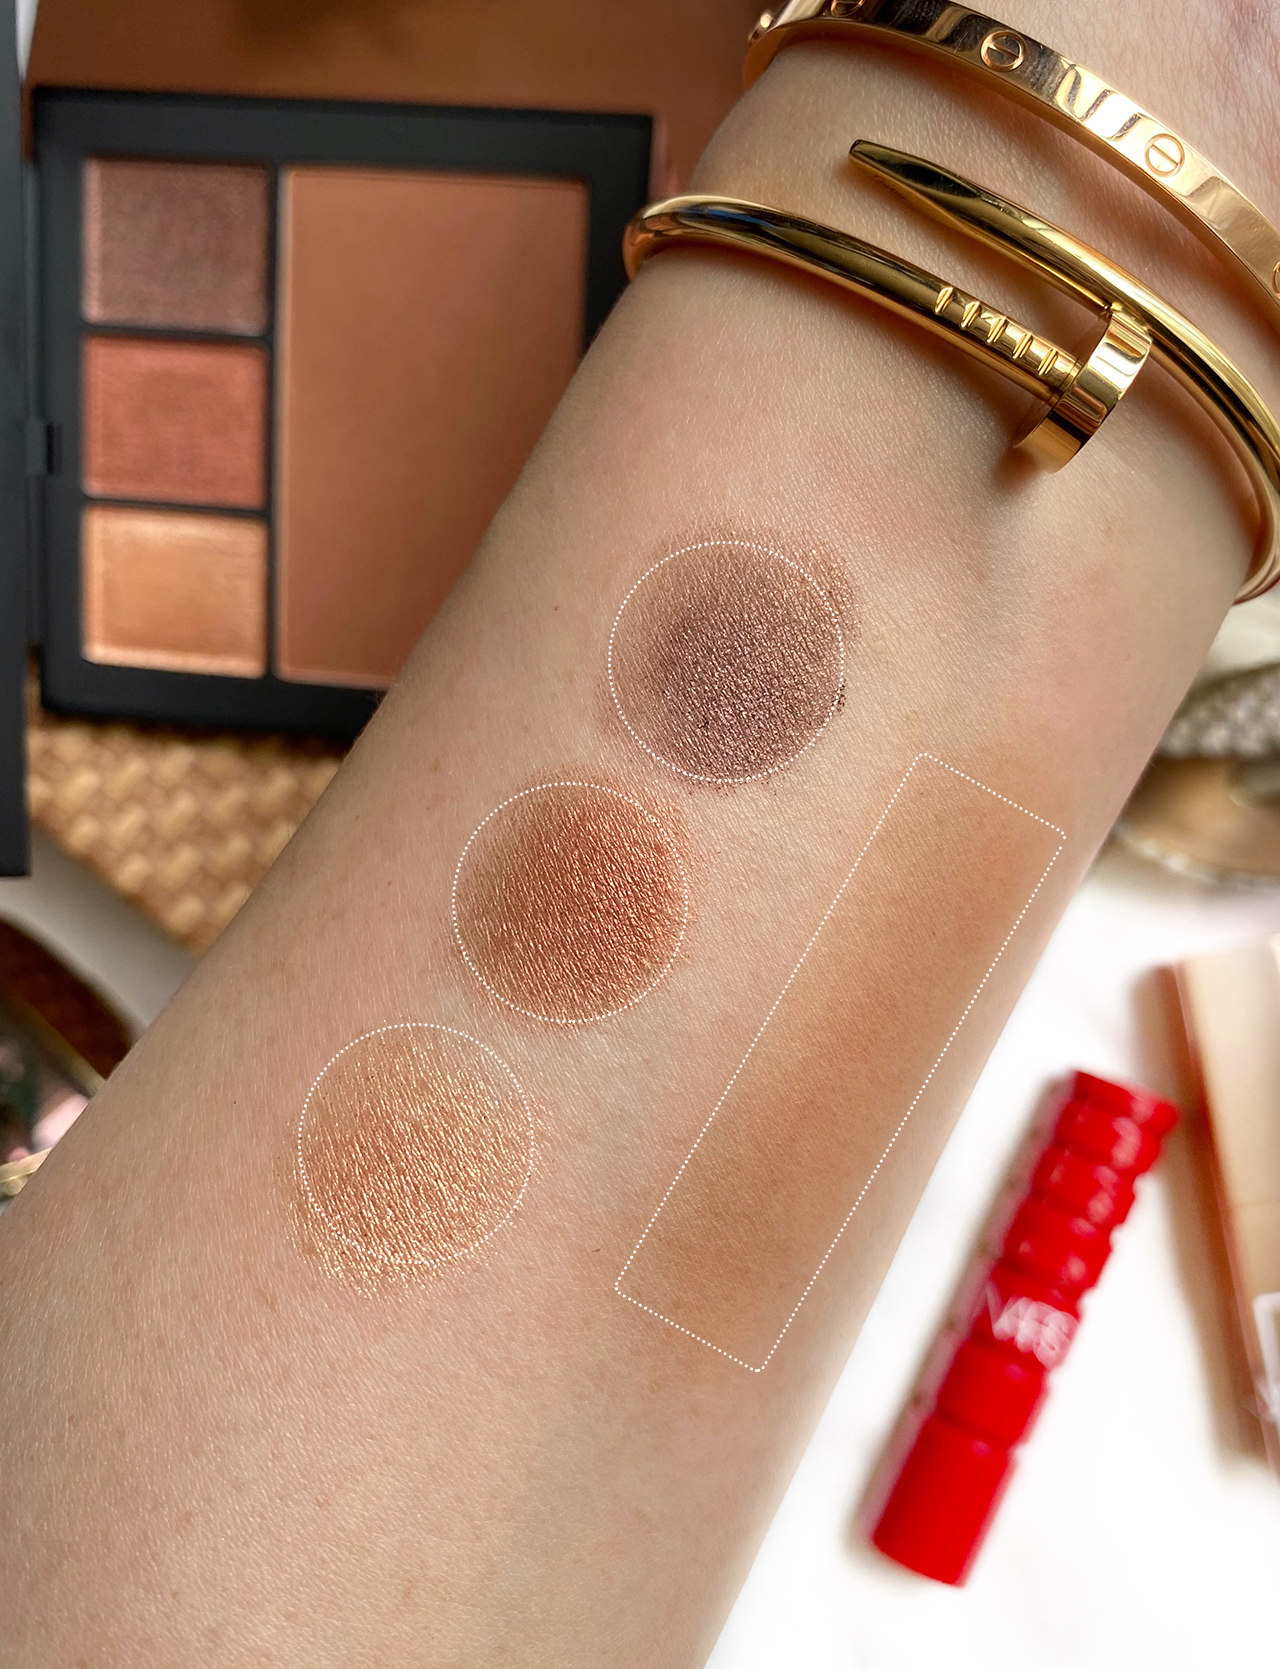 NARS Au Soleil Face Set from Bronze Voyage Collection swatches